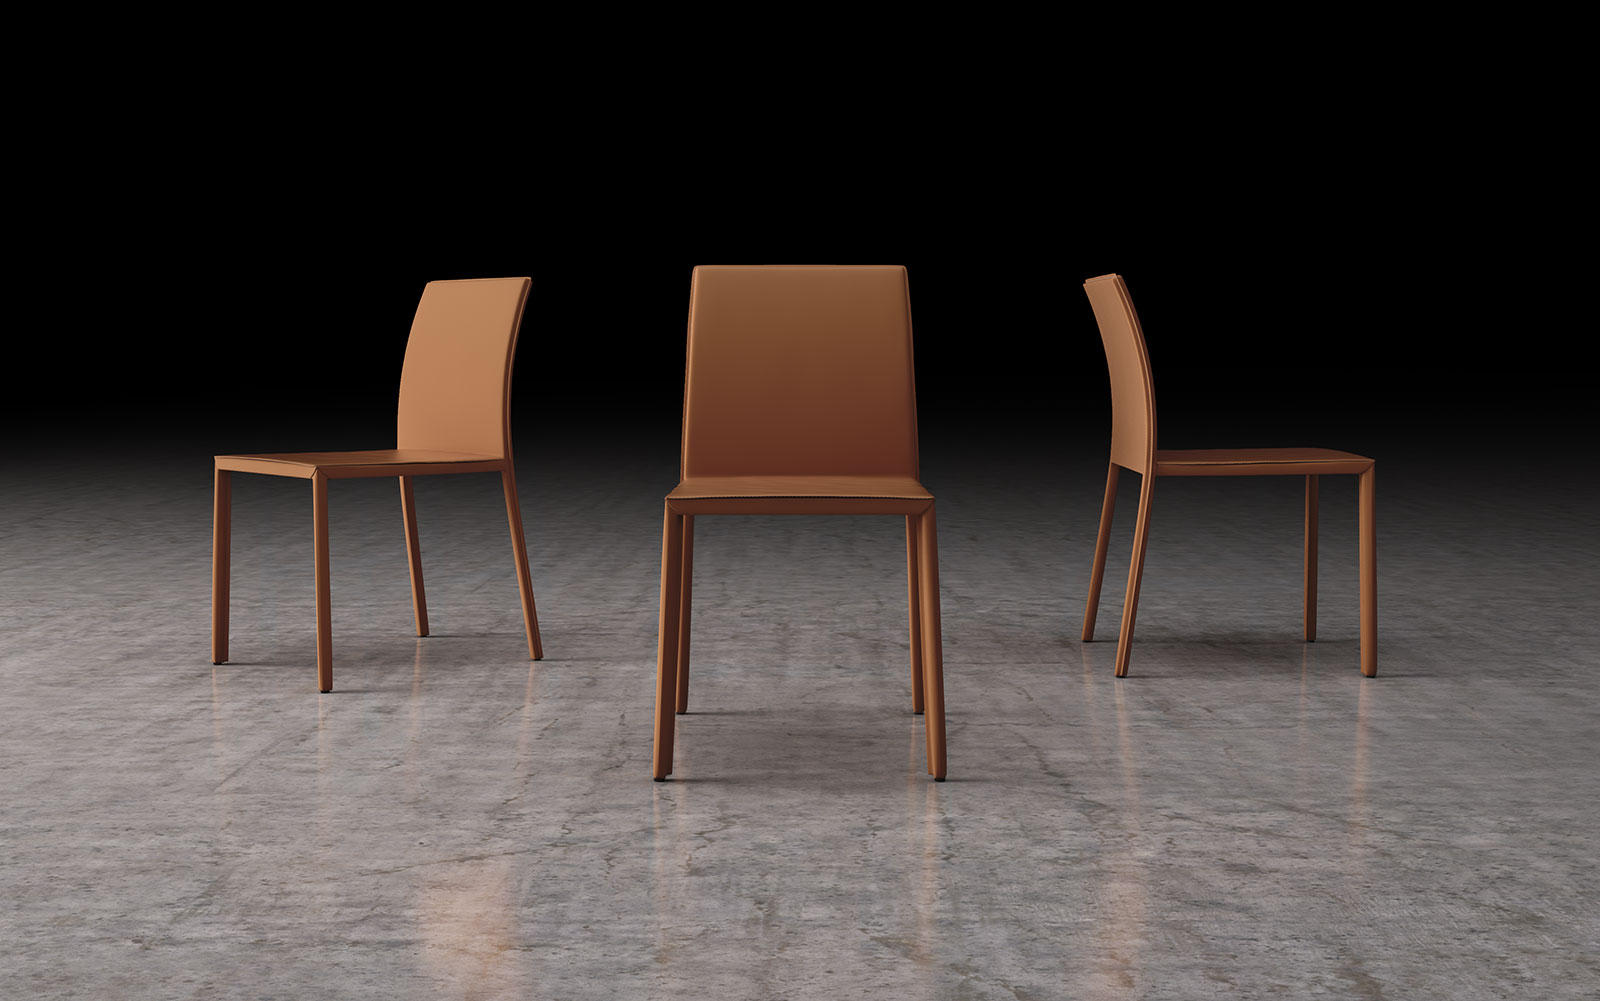 Bimmaloft_dining_chairs_sanctuary_1. Bimmaloft_dining_chairs_sanctuary_2.  Bimmaloft_dining_chairs_sanctuary_3. Bimmaloft_dining_chairs_sanctuary_4